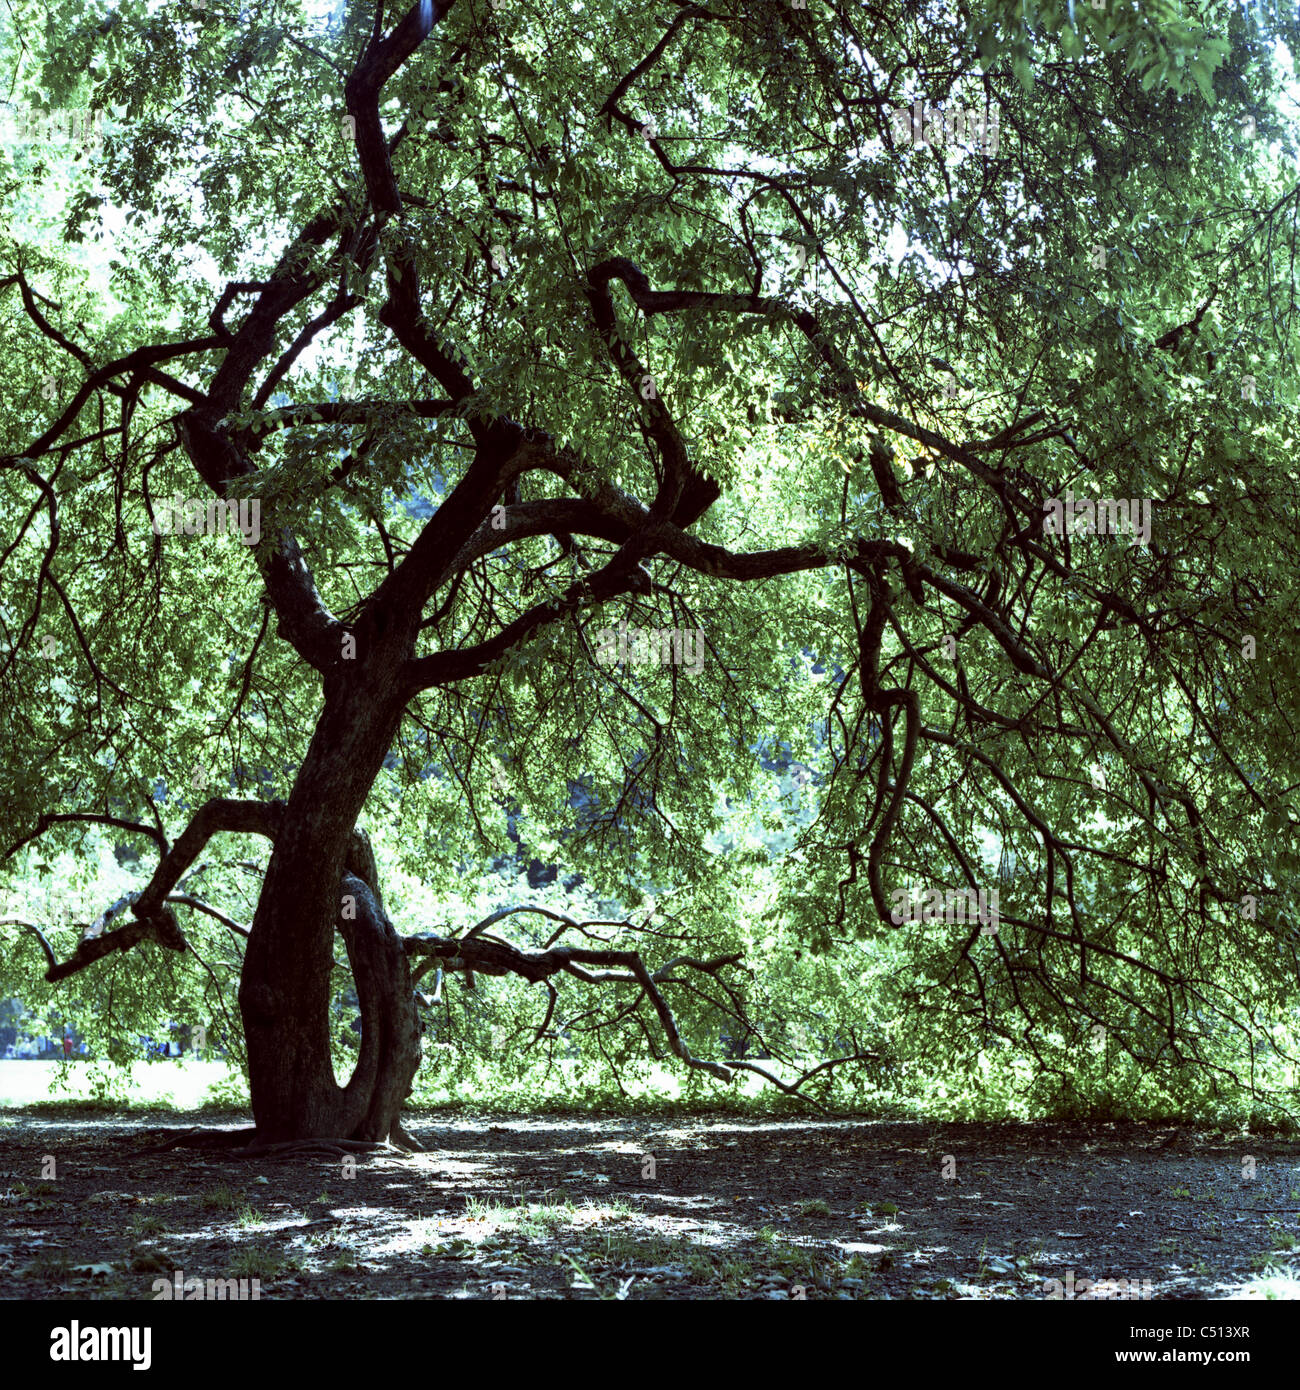 Large tree with twisted trunk - Stock Image